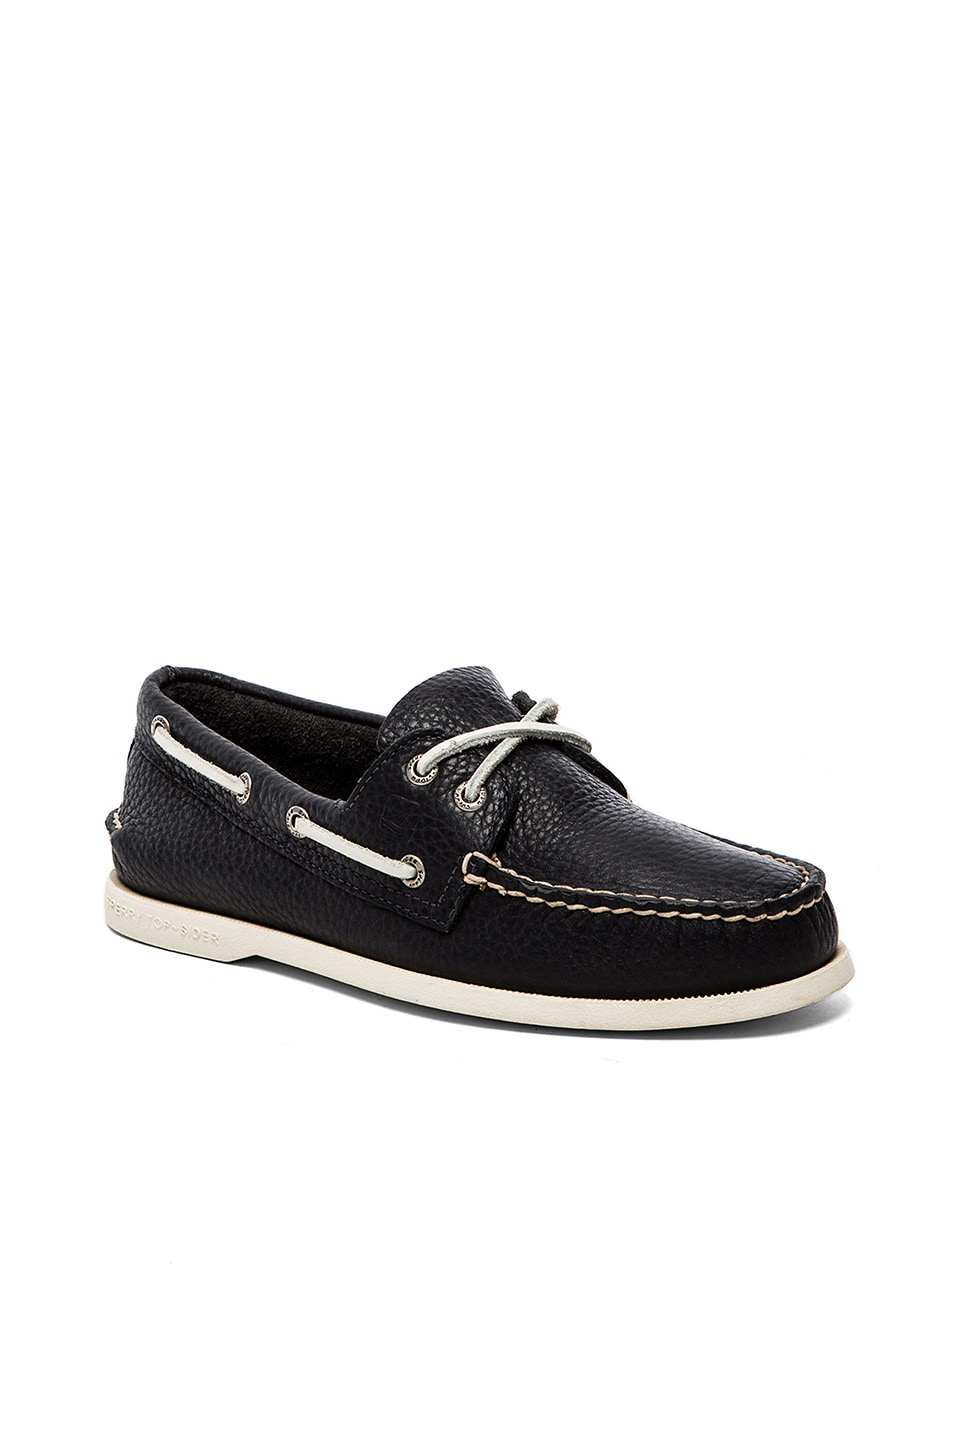 Sperry Top-Sider A/O in Navy